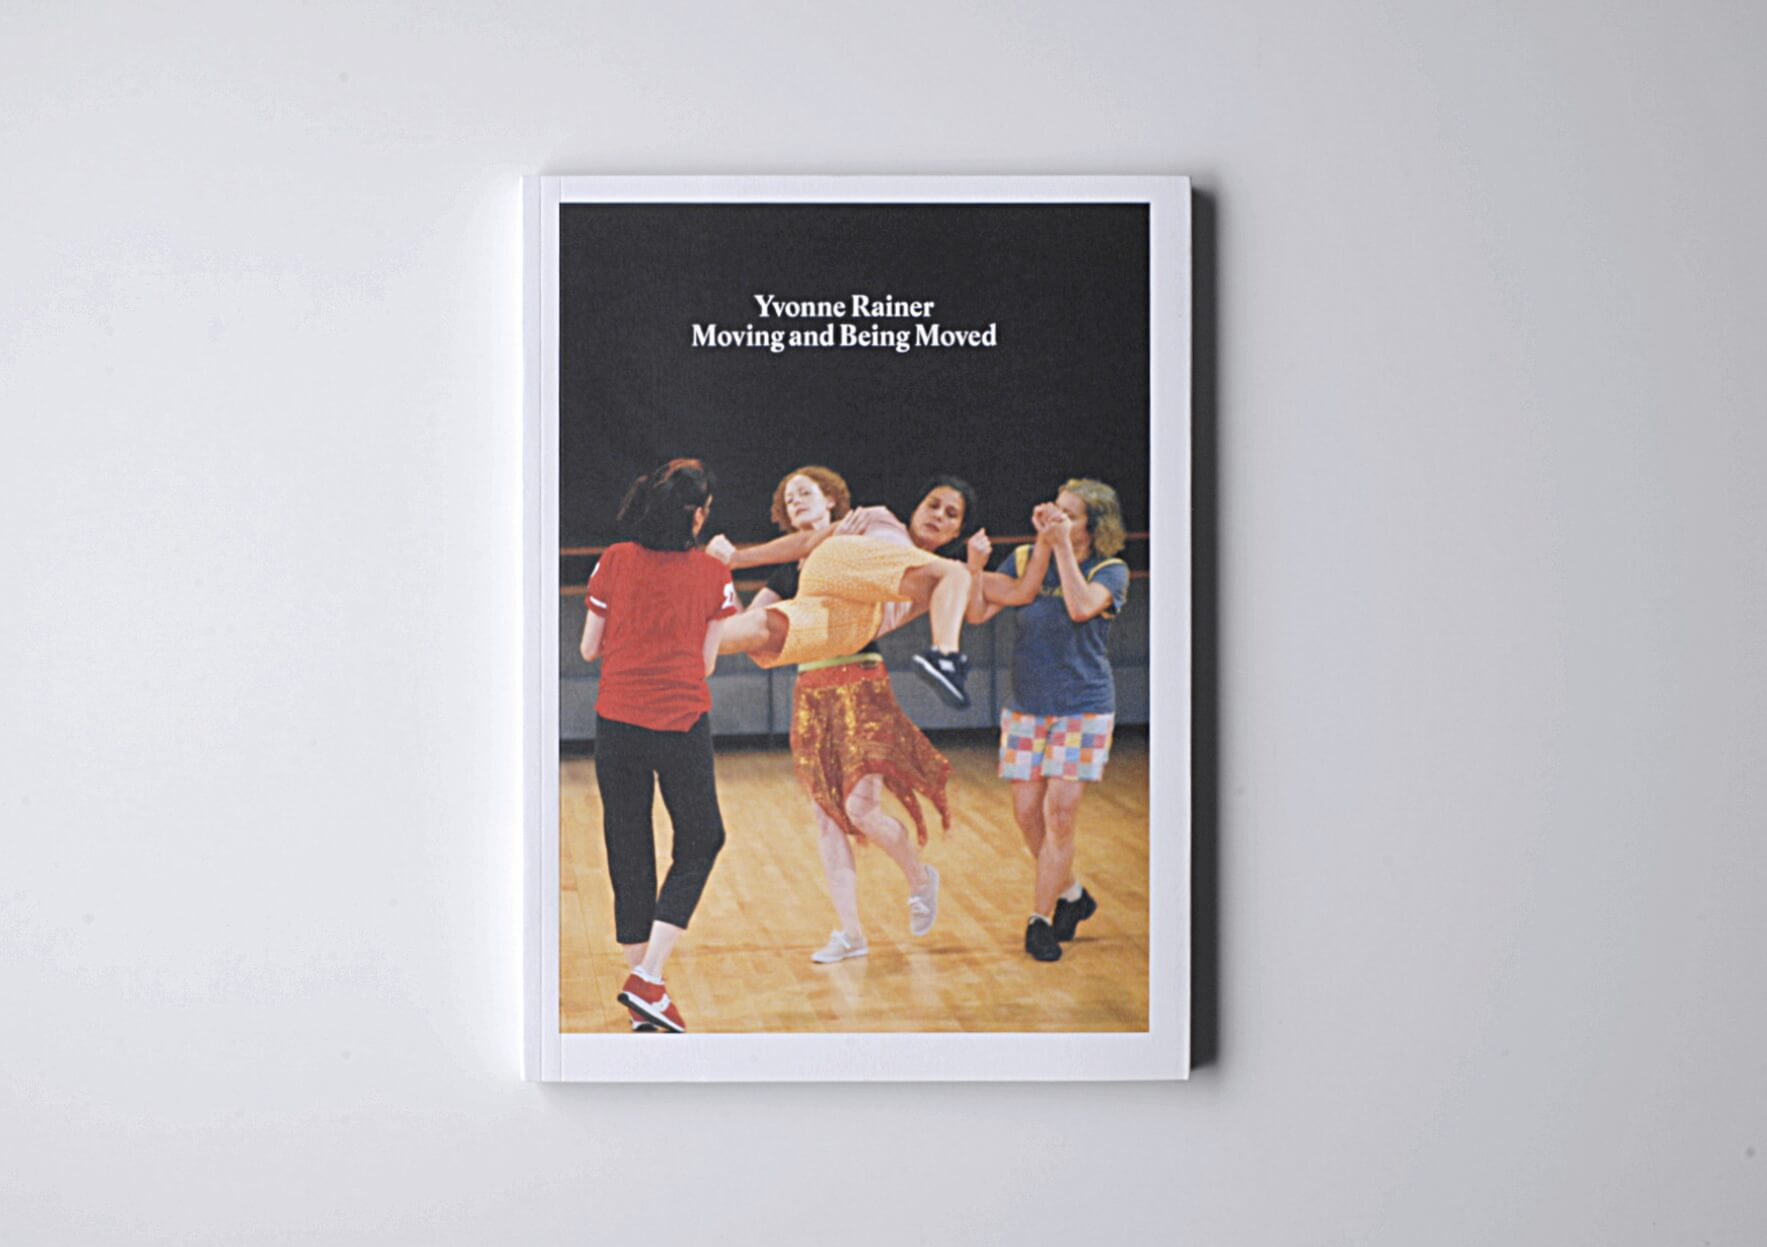 Yvonne Rainer Moving And Being Moved, 2017 28 x 20 cm, 128 p Ed. Roma Publications | Mother | ProjecteSD